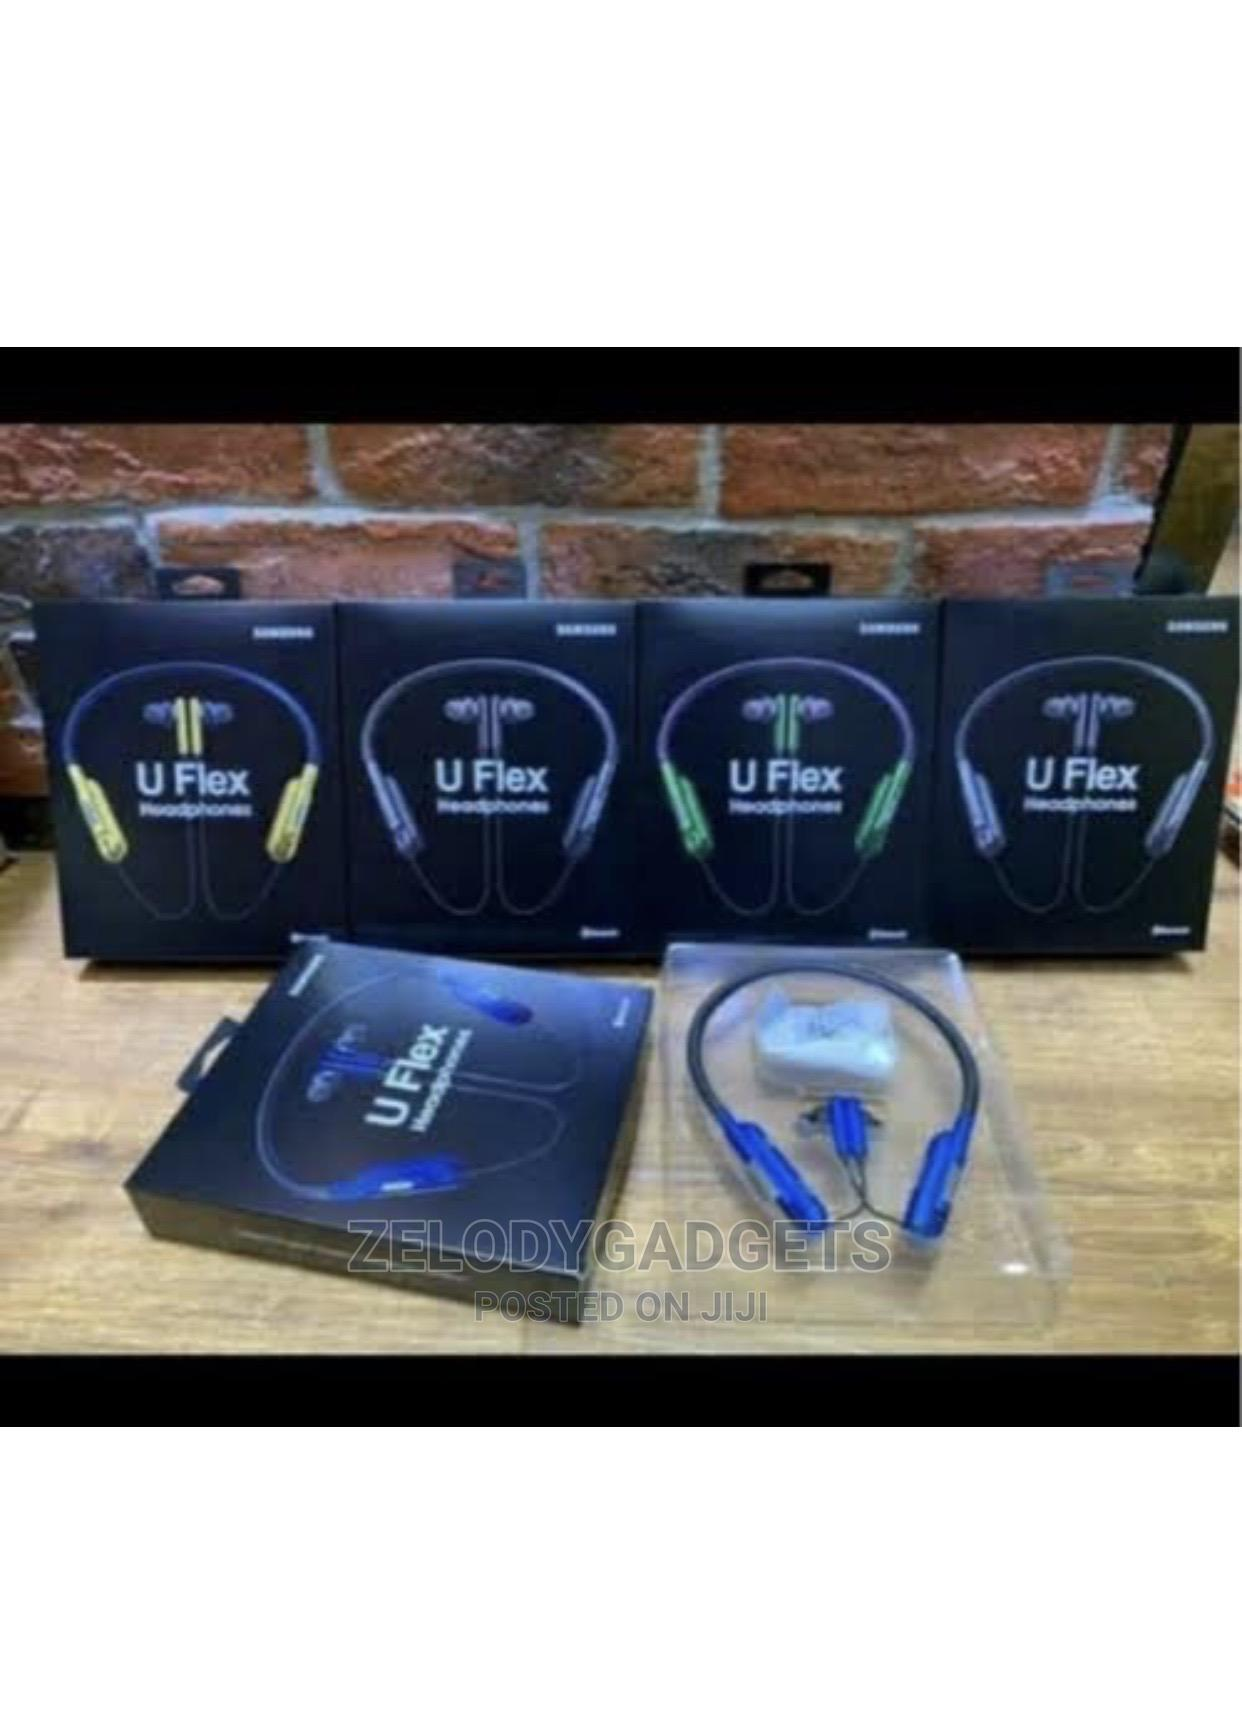 Samsung U Flex Wireless Headphone   Accessories for Mobile Phones & Tablets for sale in Wuse 2, Abuja (FCT) State, Nigeria